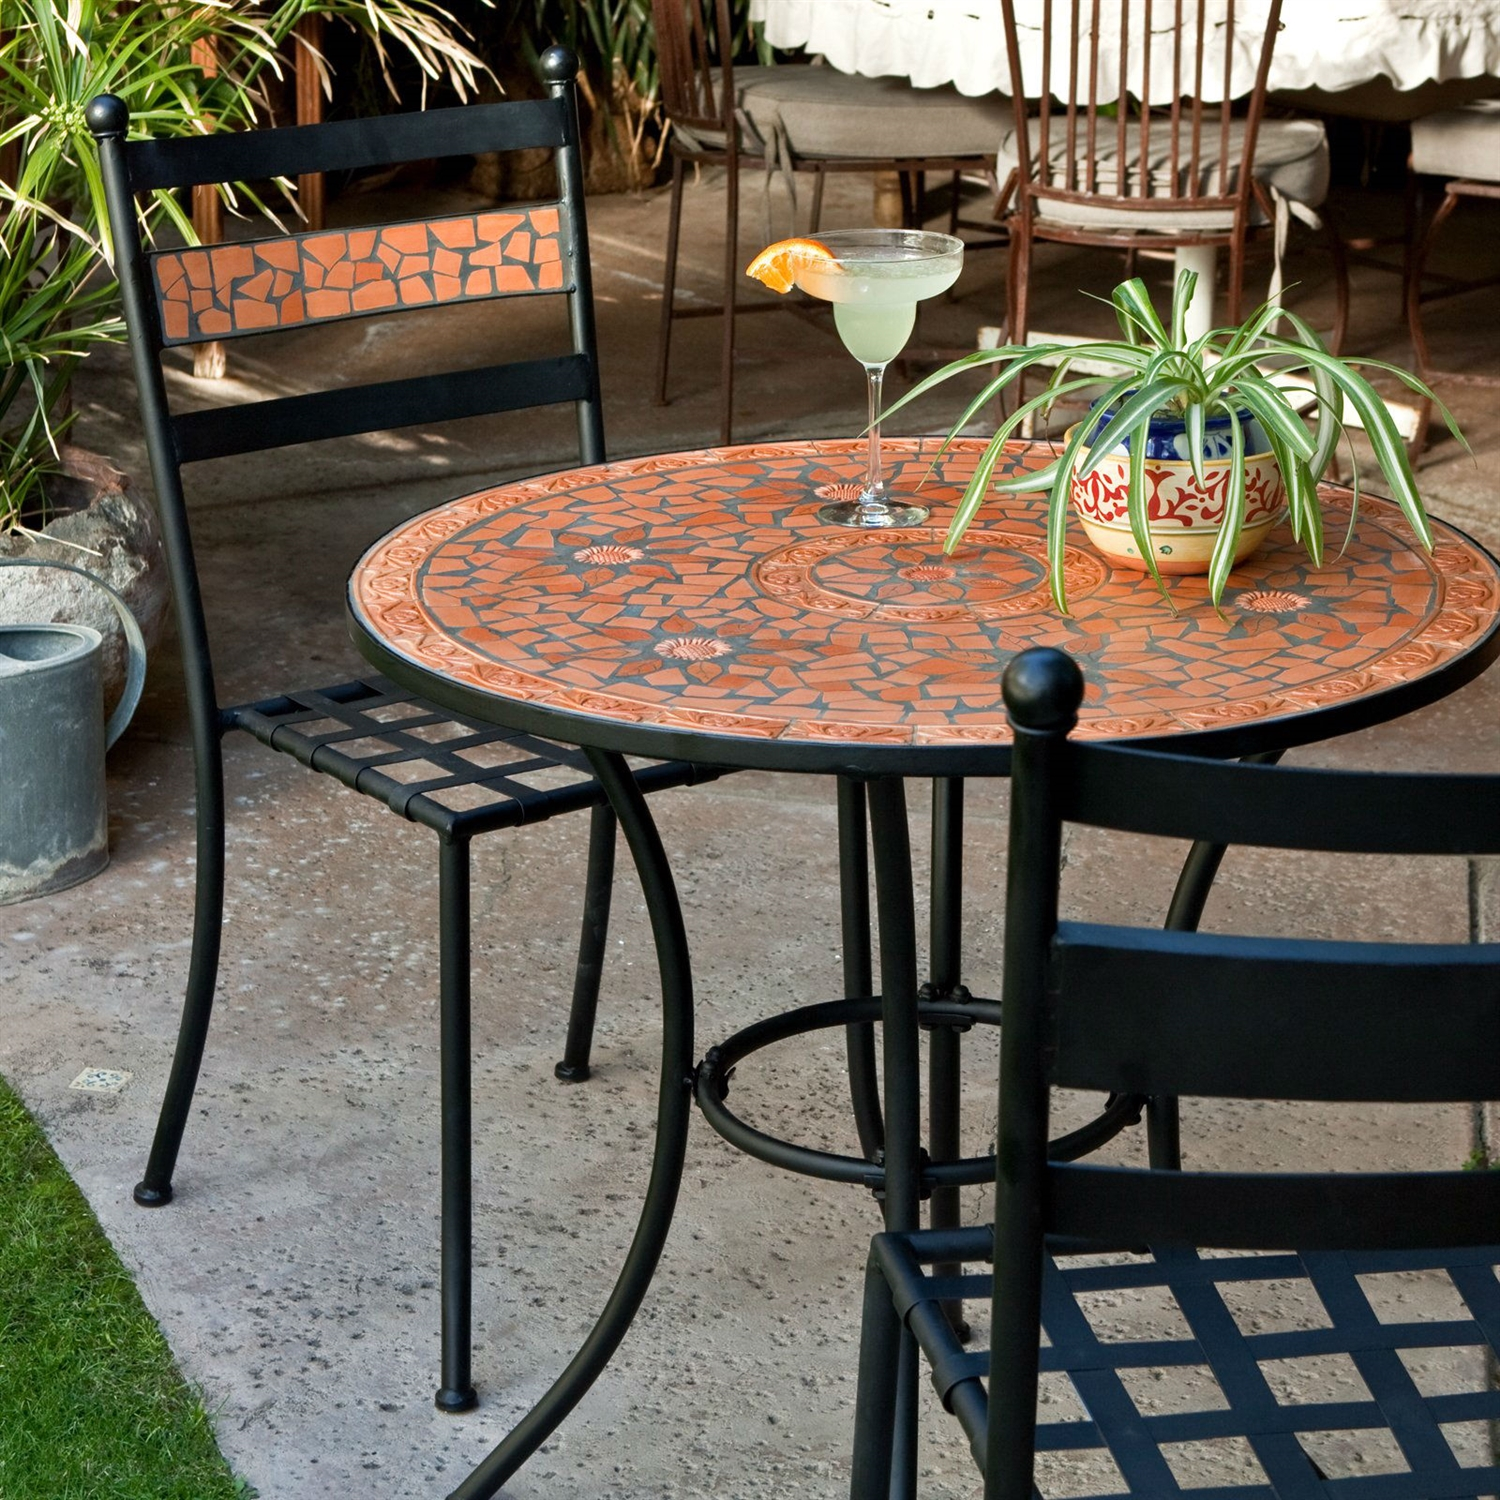 3-Piece Black Metal Patio Bistro Set with Terra Cotta Tiles | Fastfurnishings.com